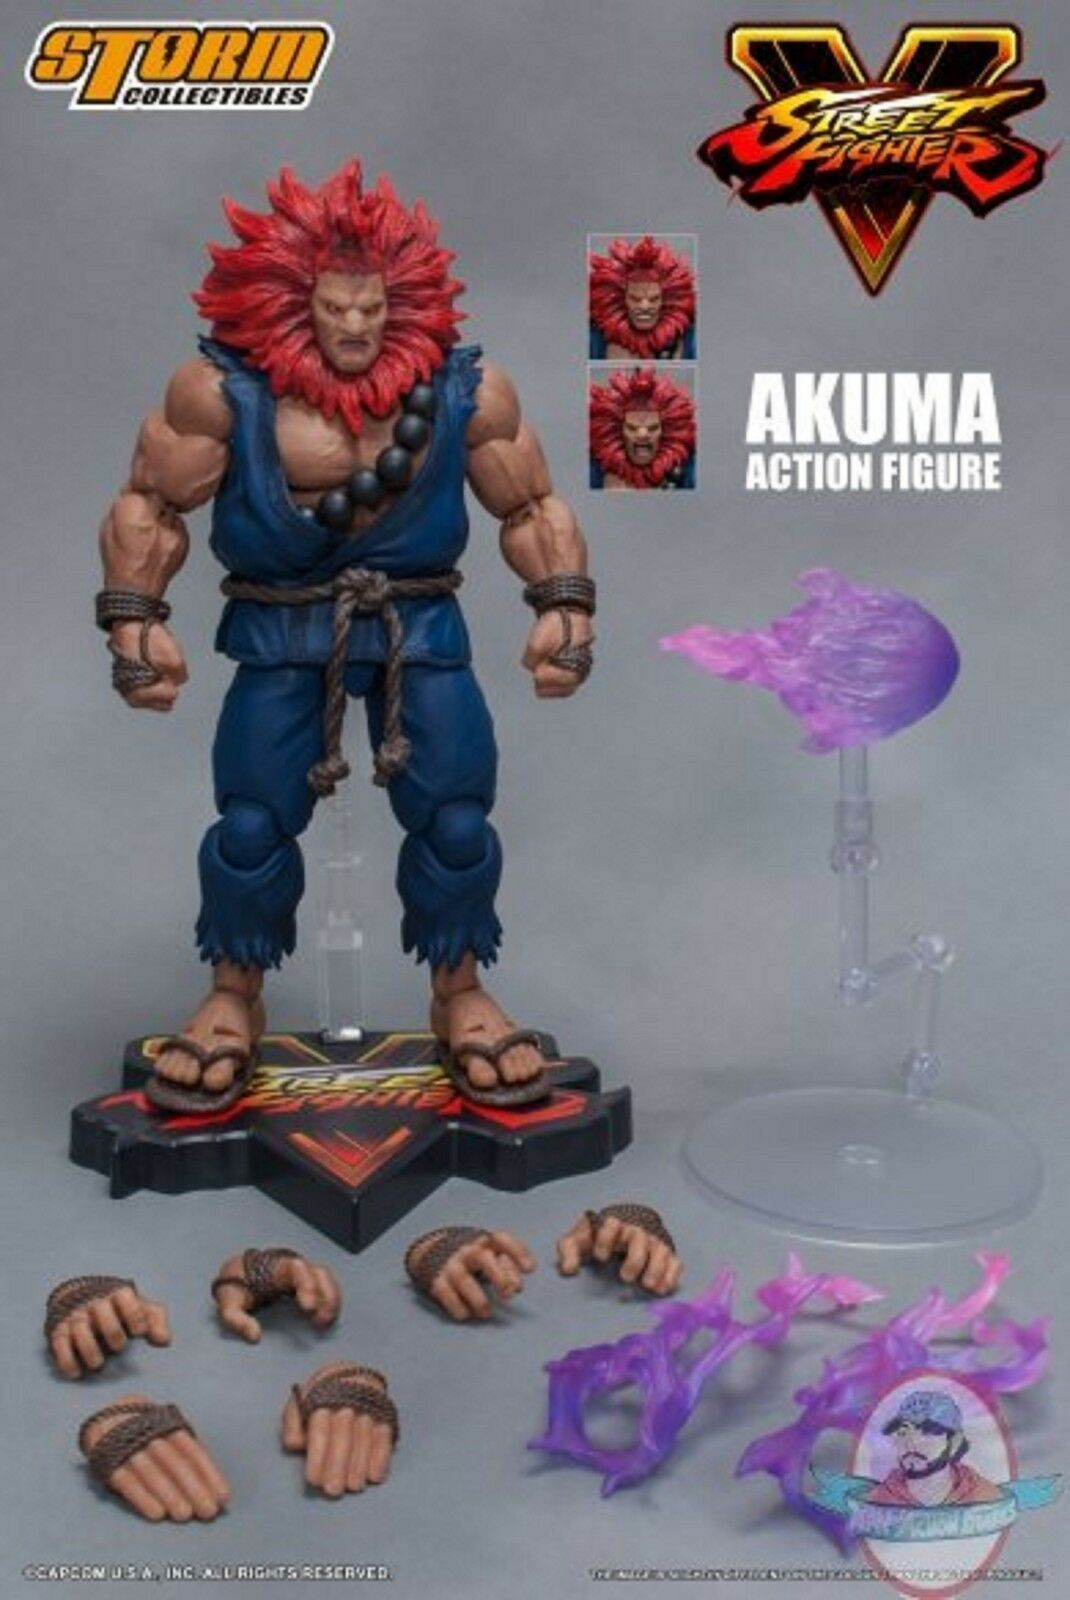 1 12 rue Fighter V Akuma  Action Figure Storm Collectibles  soutenir le commerce de gros